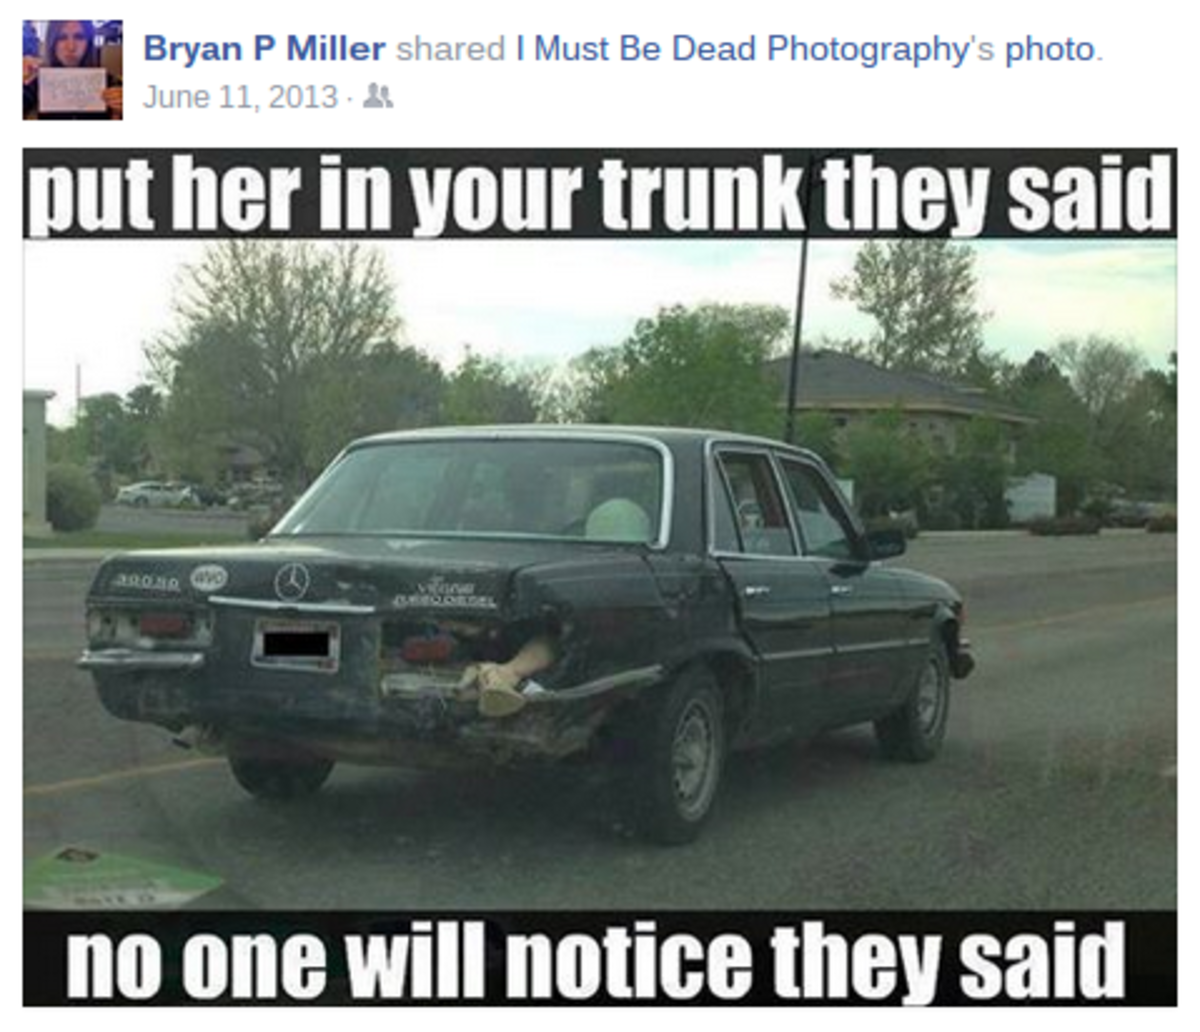 One of Bryan's unsettling Facebook posts